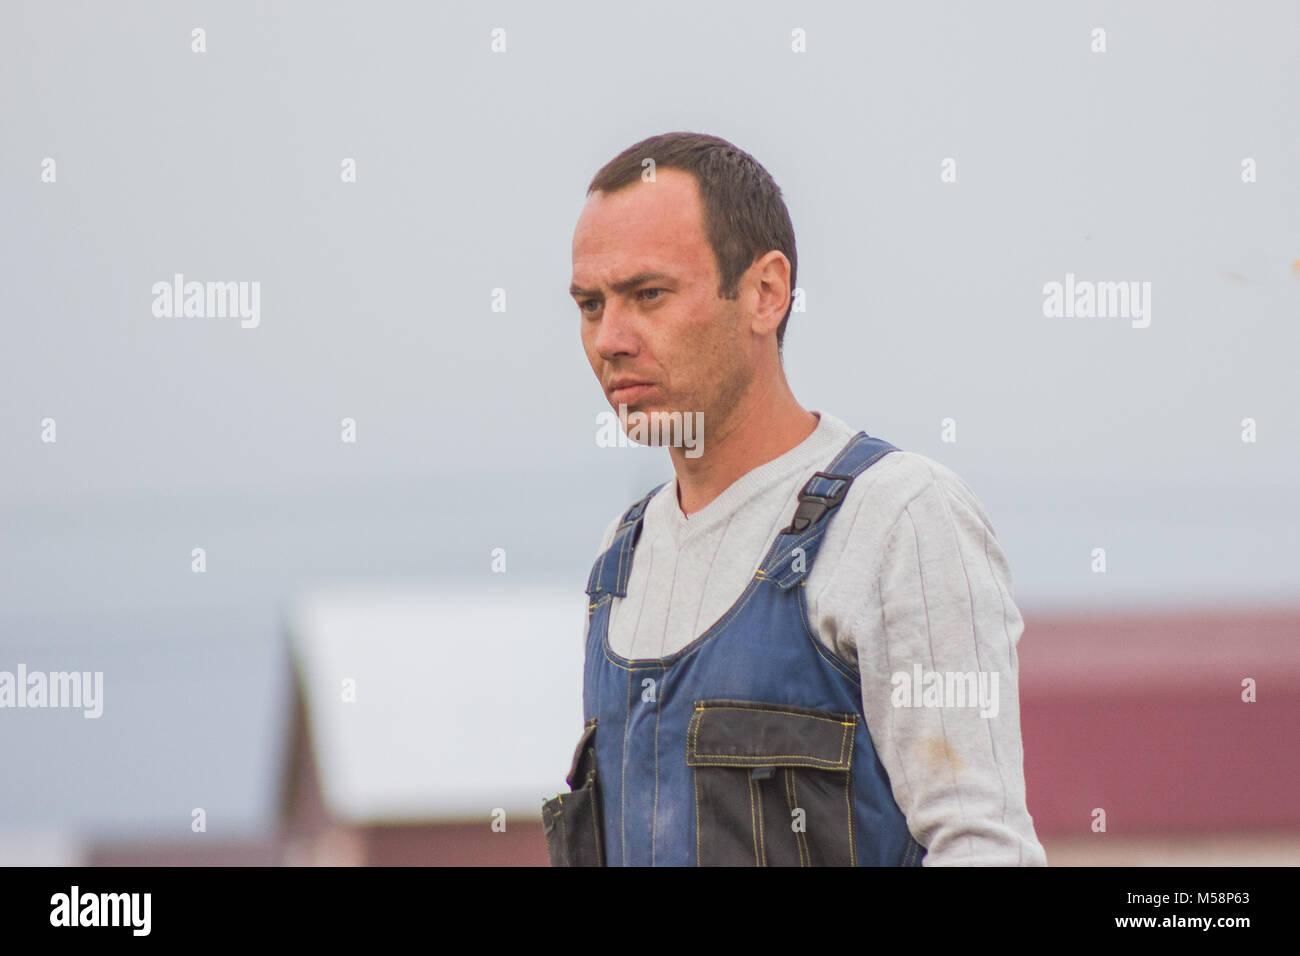 Construction worker at outdoor construction site - Stock Image